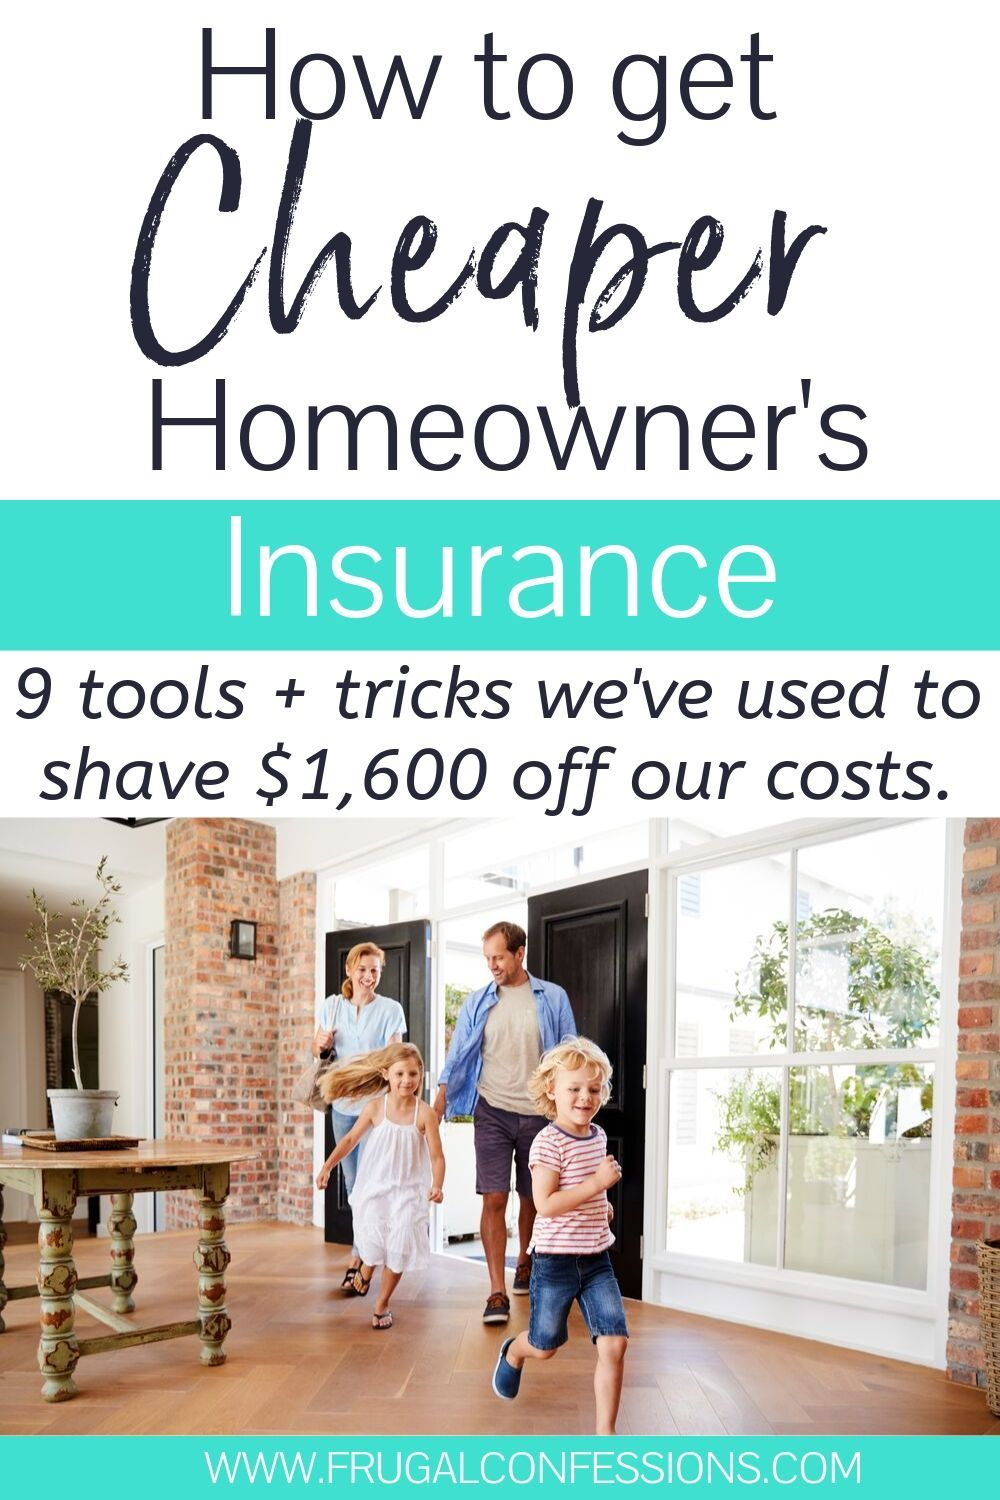 How to Get Cheaper Homeowner's Insurance (9 Must-Try Strategies)